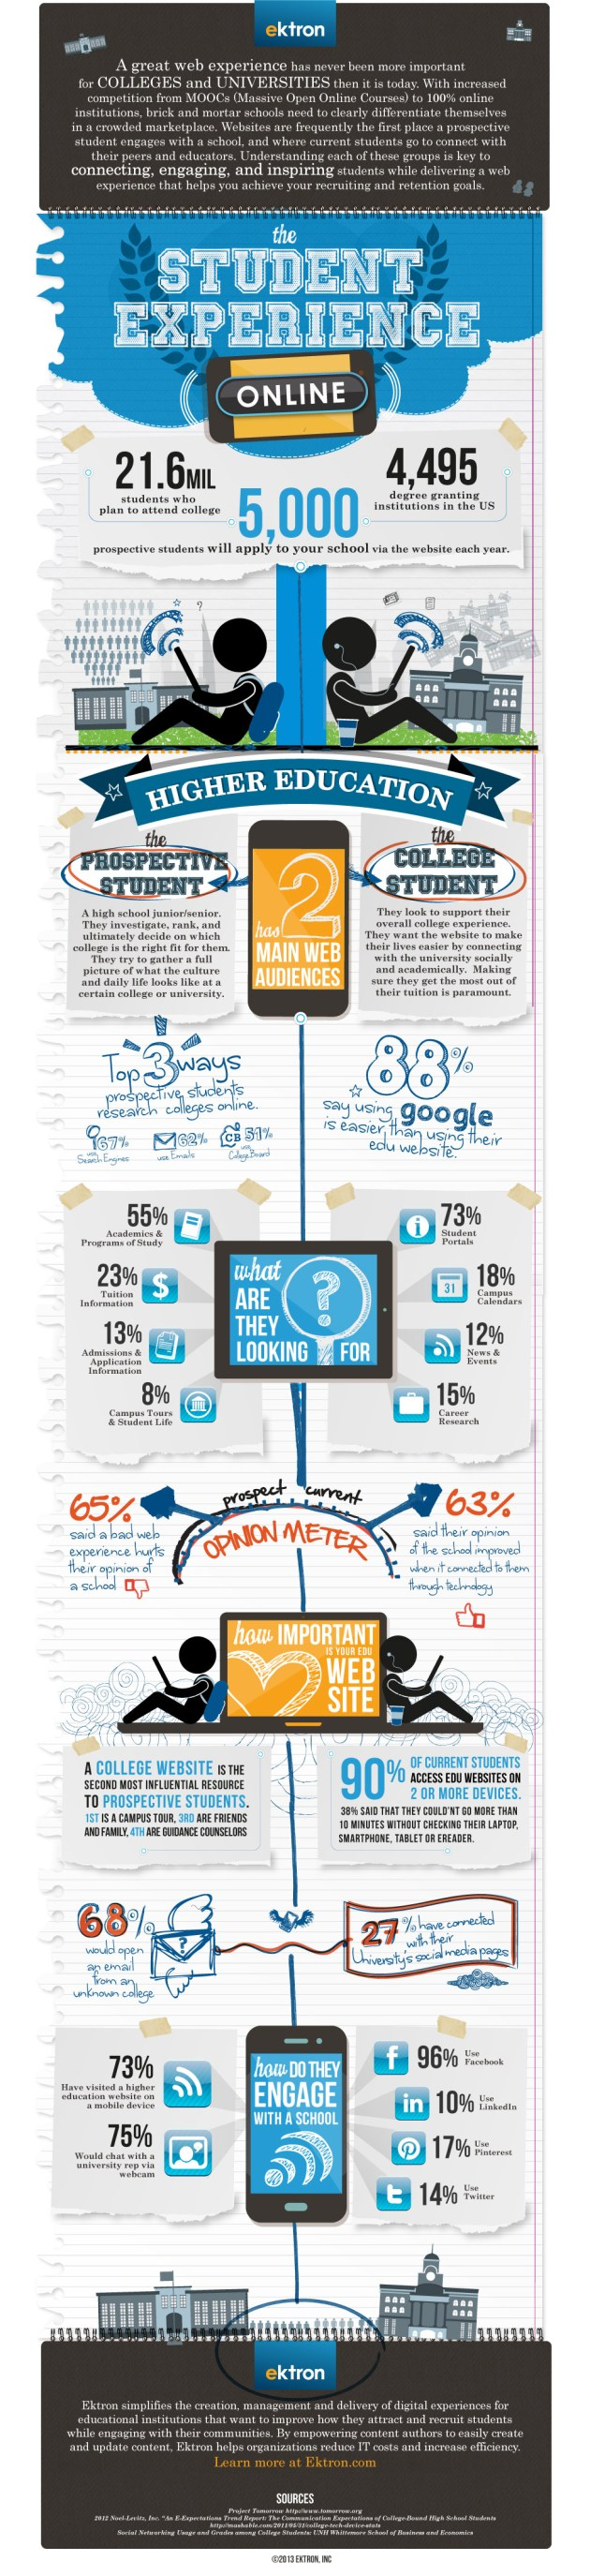 the-student-experience-online_51311fe349f39